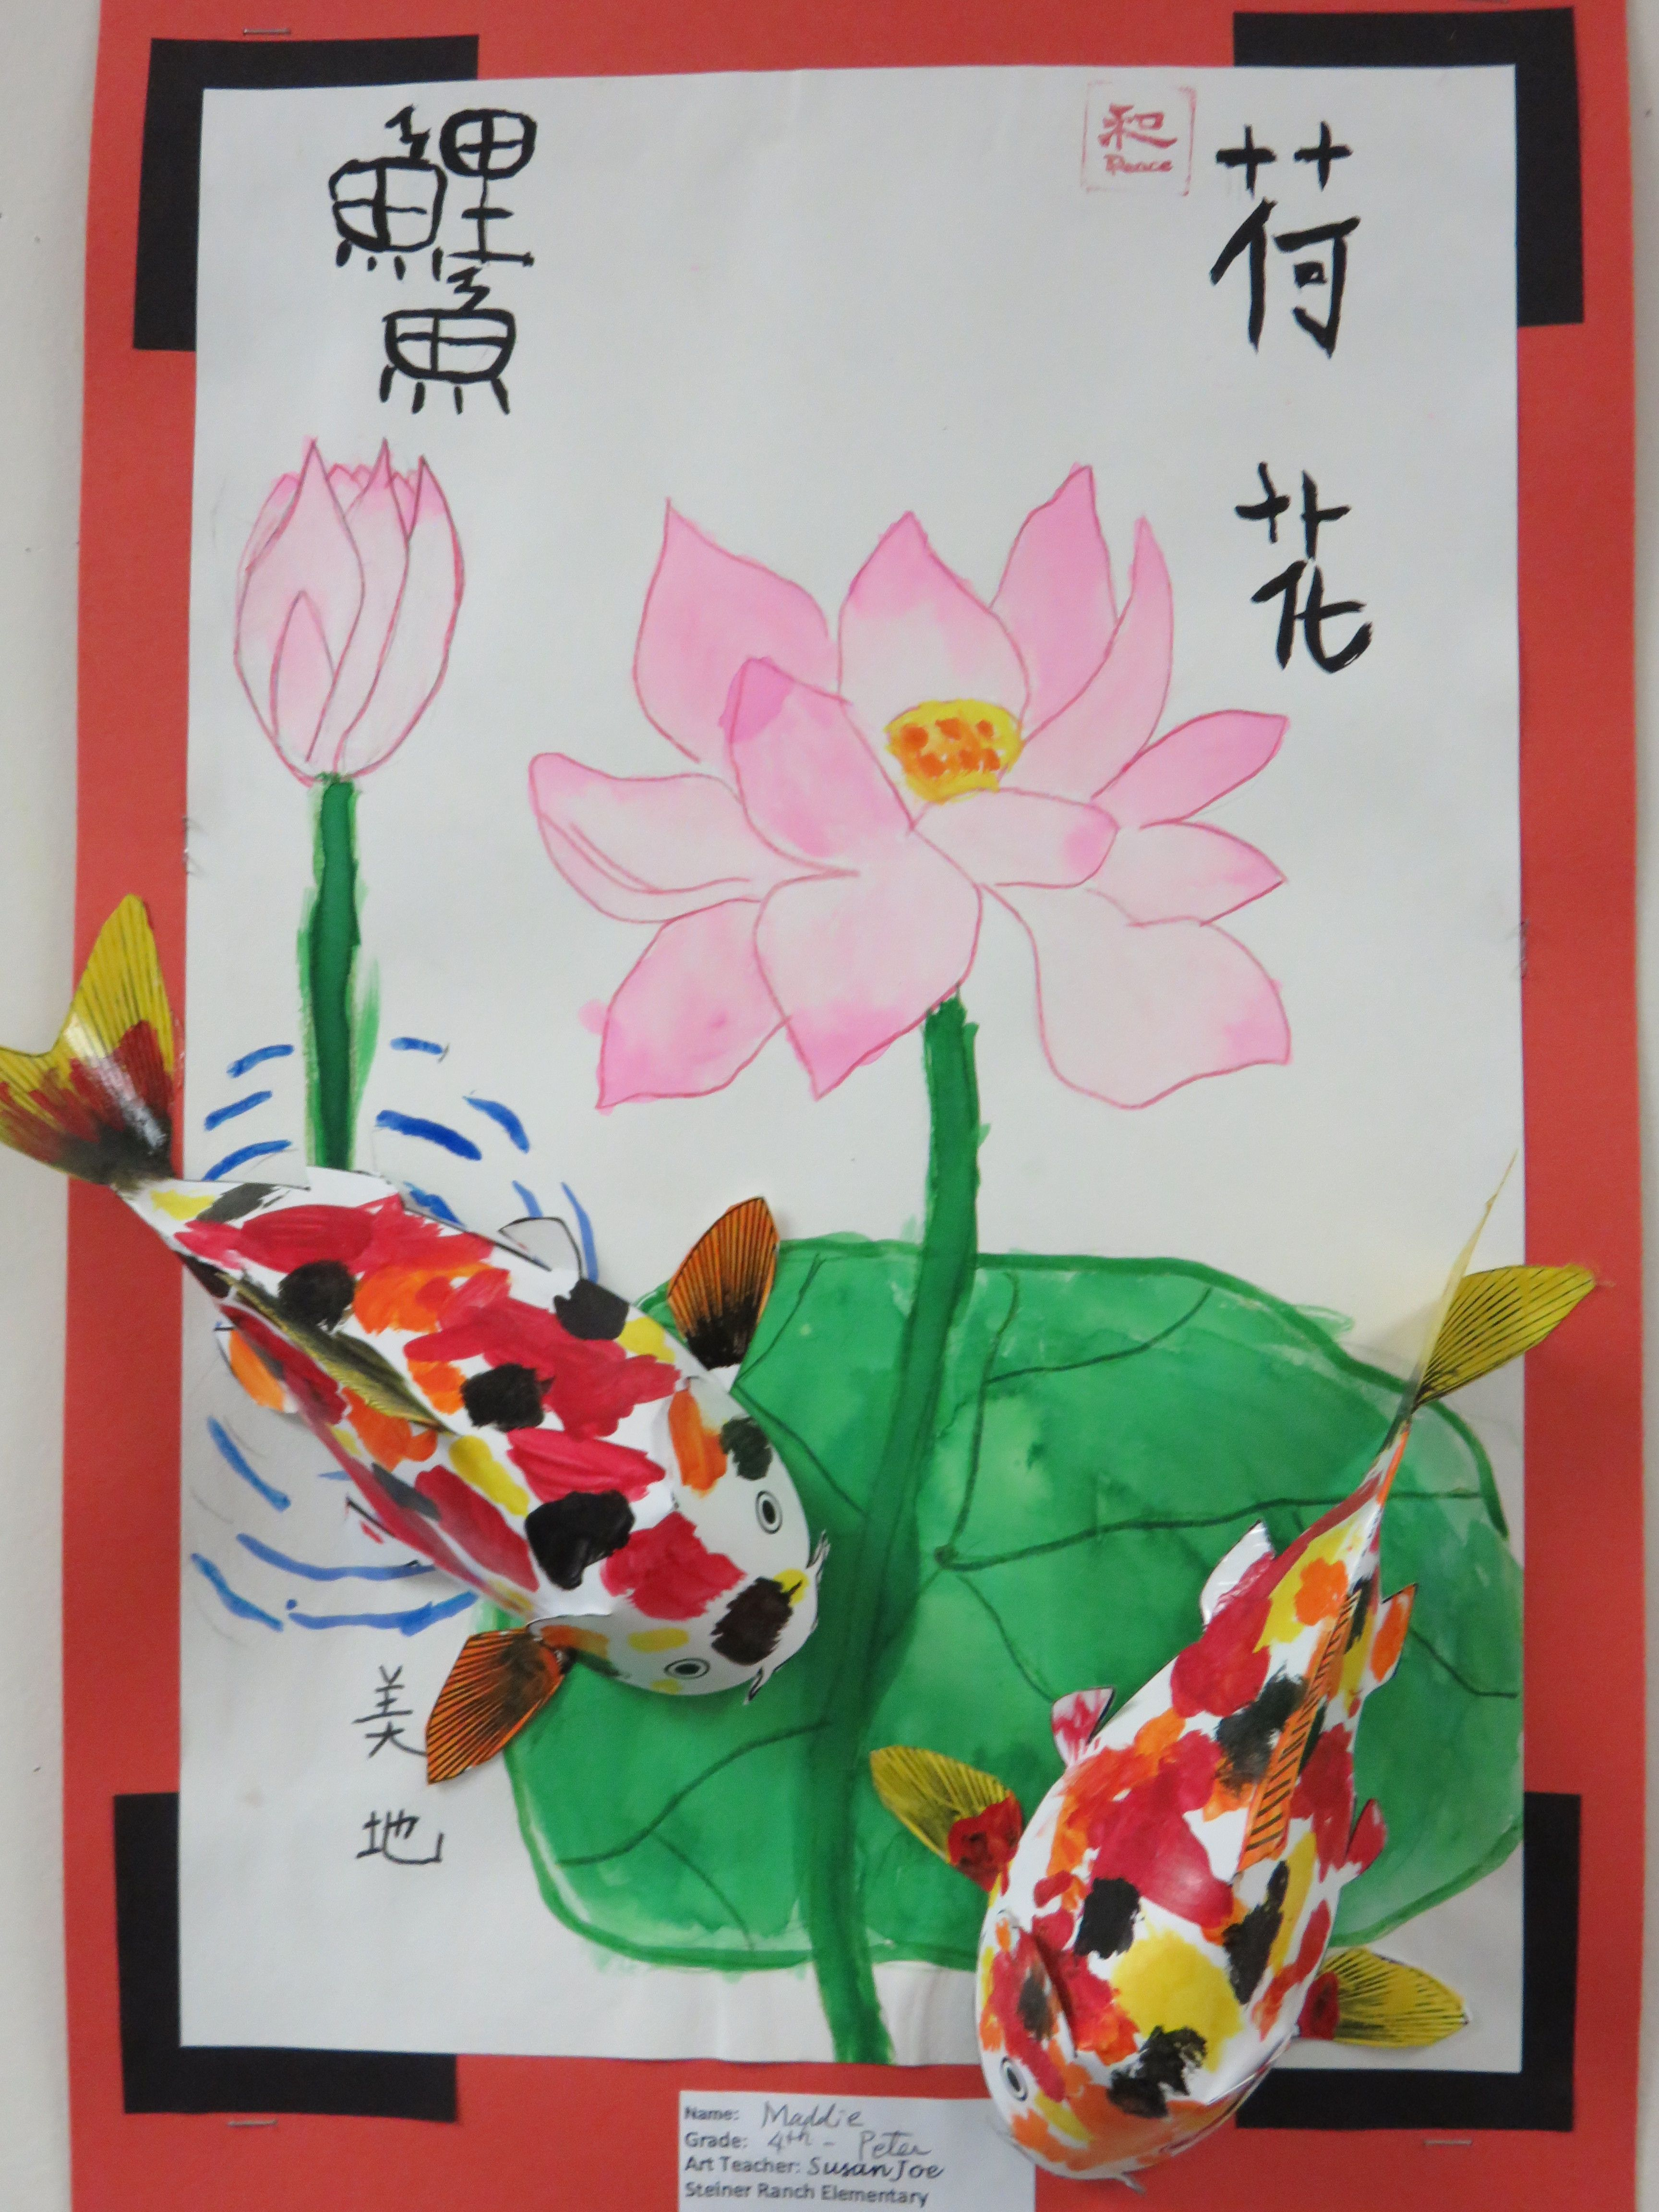 4th Grade 3d Paper Koi Fish With Lotus Flower Background 12 X 18 Lesson By Art Teacher